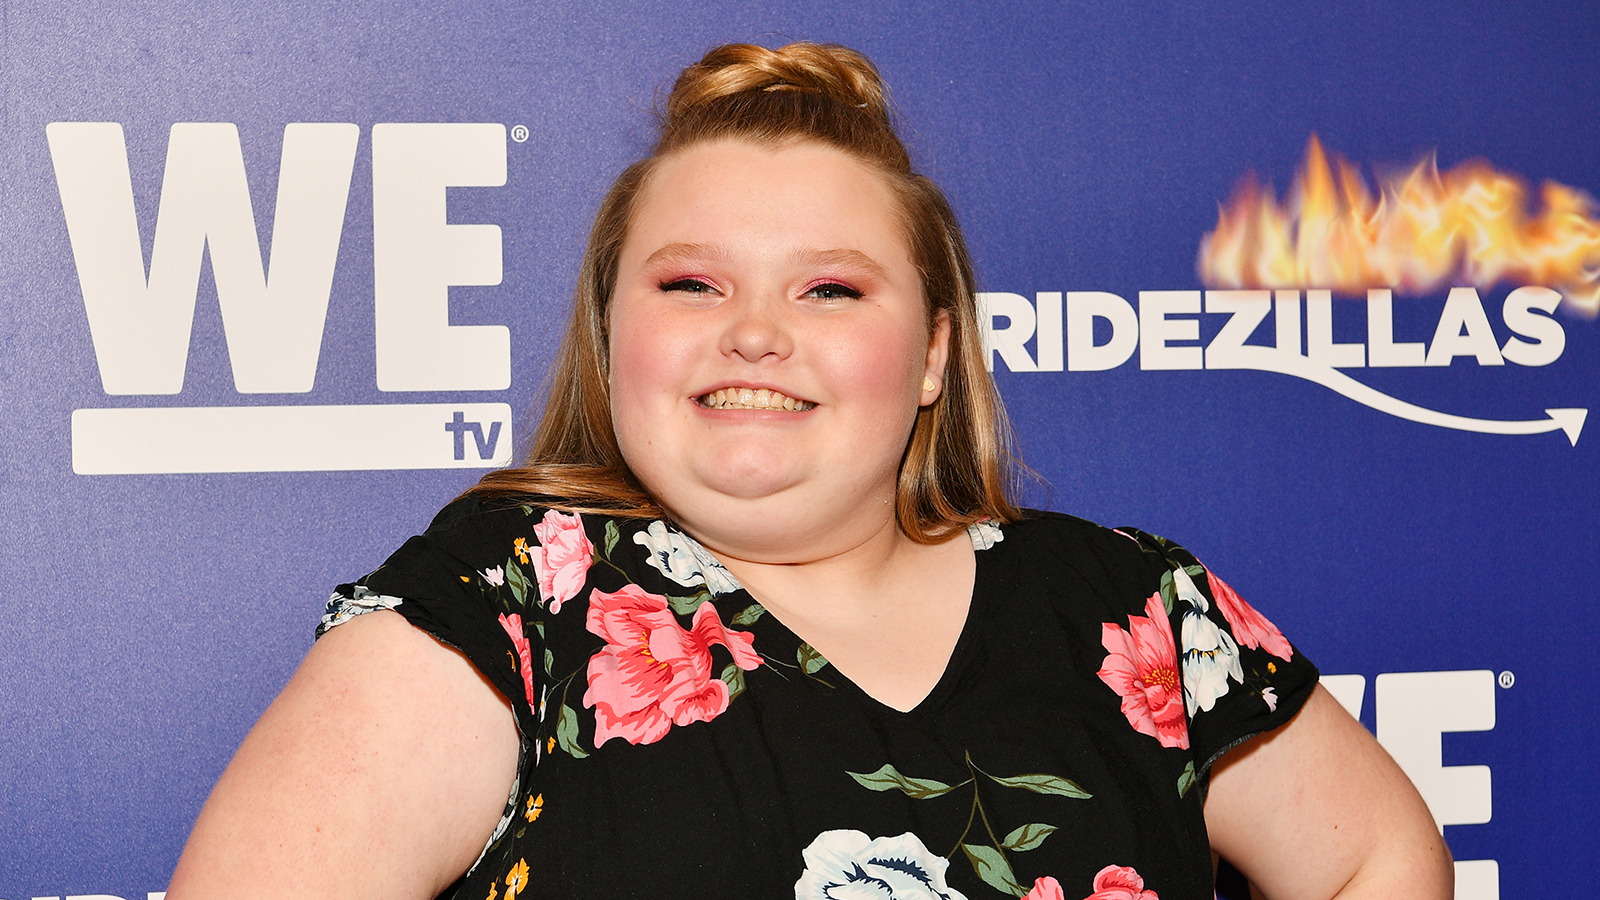 The 14-year old daughter of father (?) and mother(?) Honey Boo Boo in 2020 photo. Honey Boo Boo earned a million dollar salary - leaving the net worth at million in 2020